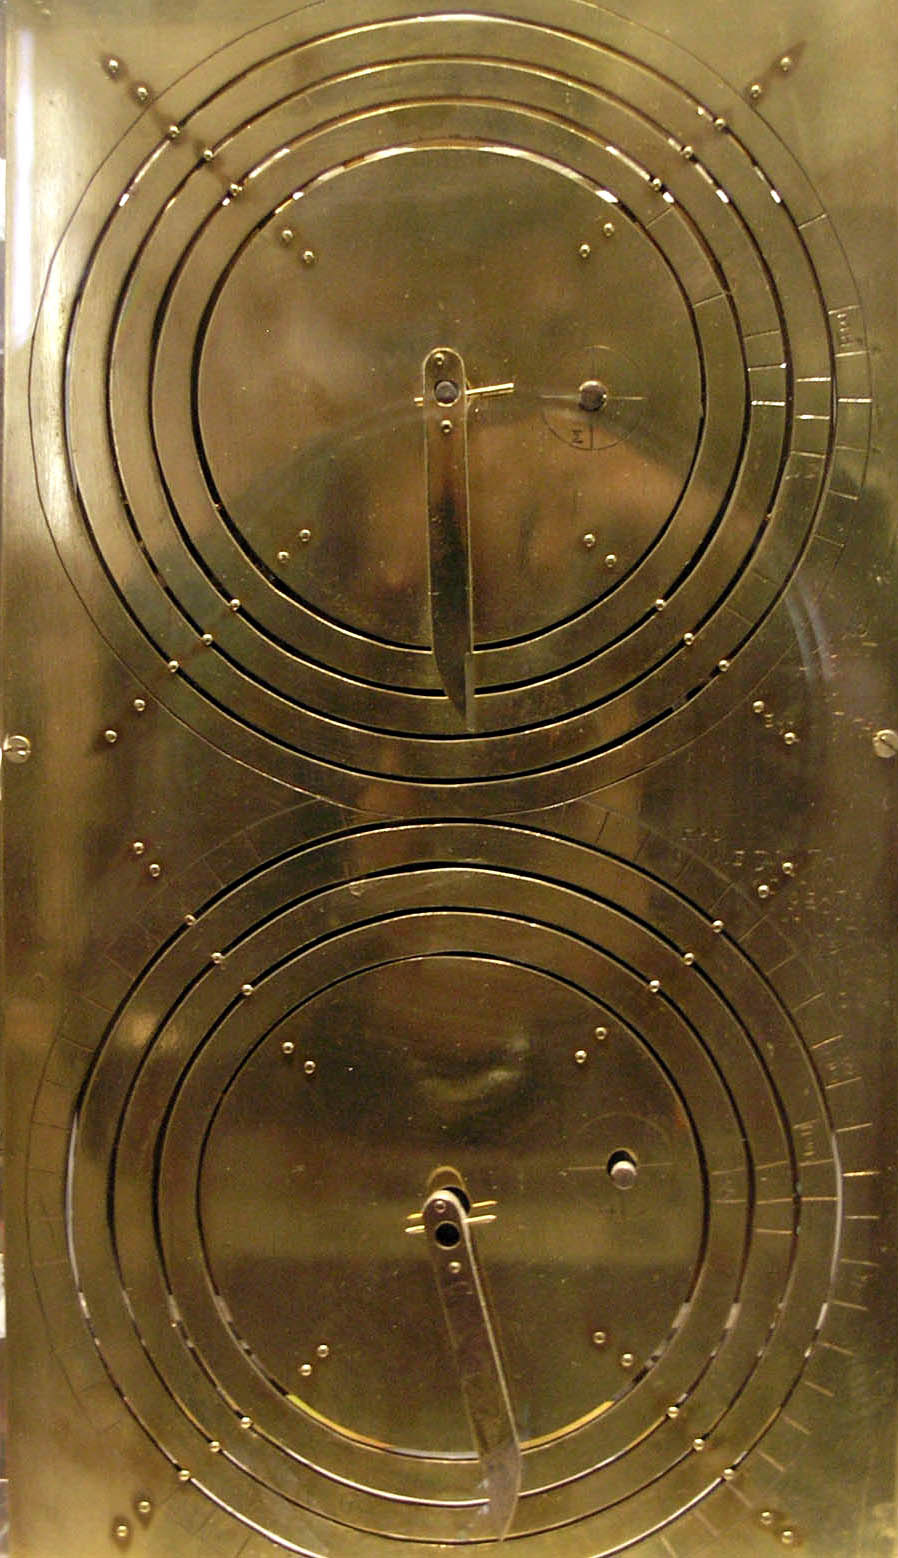 Reconstruction of the Antikythera mechanism